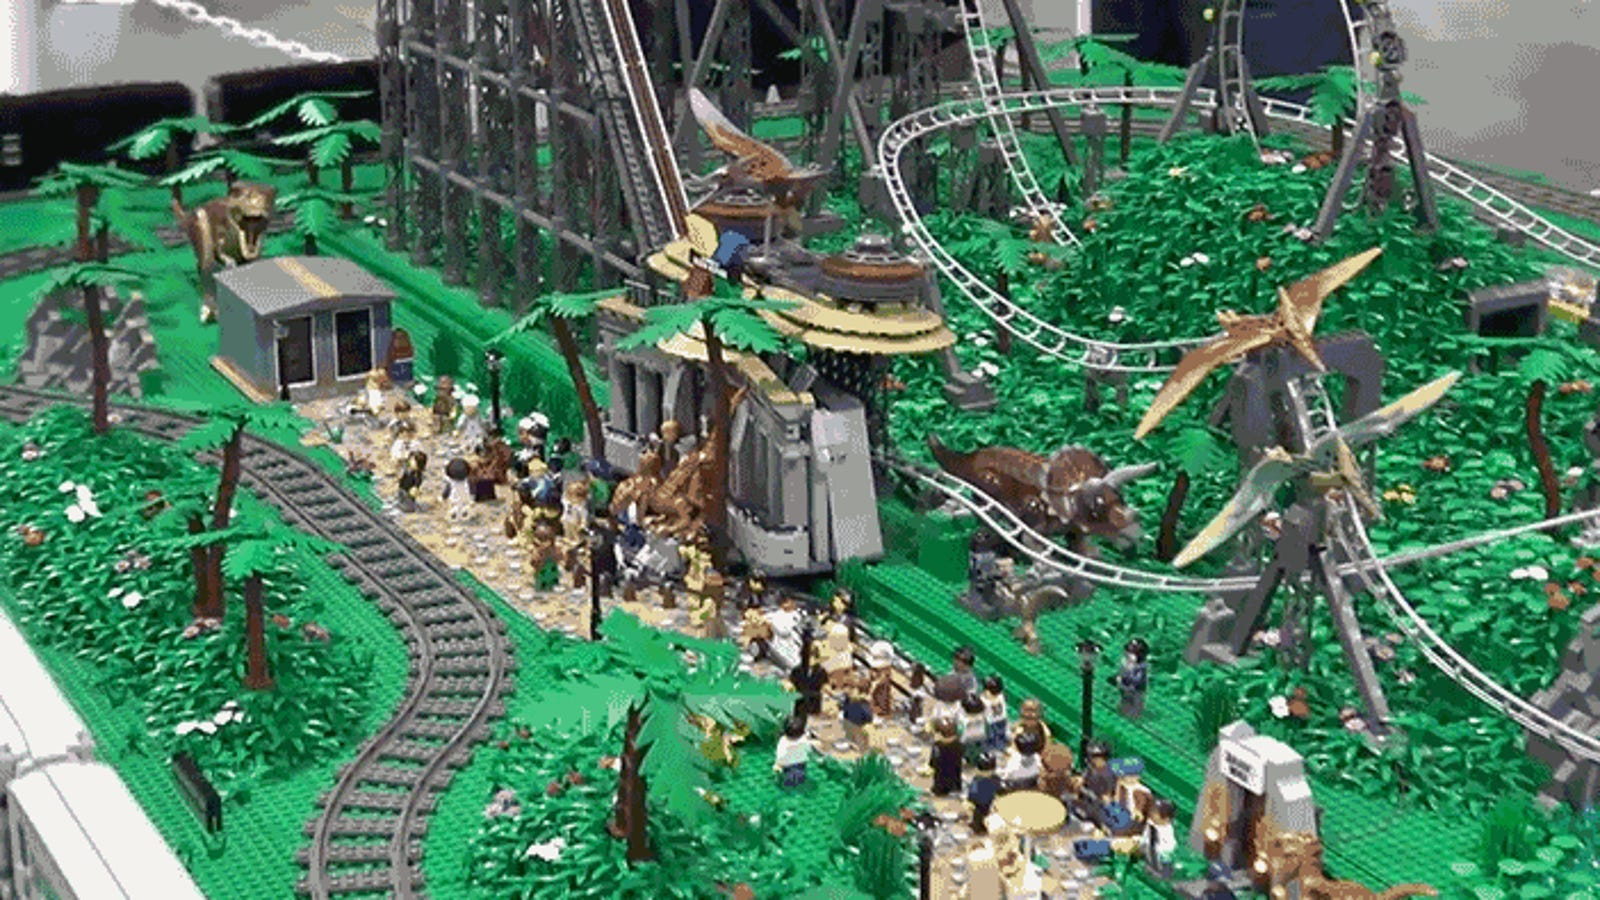 I Want to Visit This 145,000-Piece Lego Jurassic Park Roller